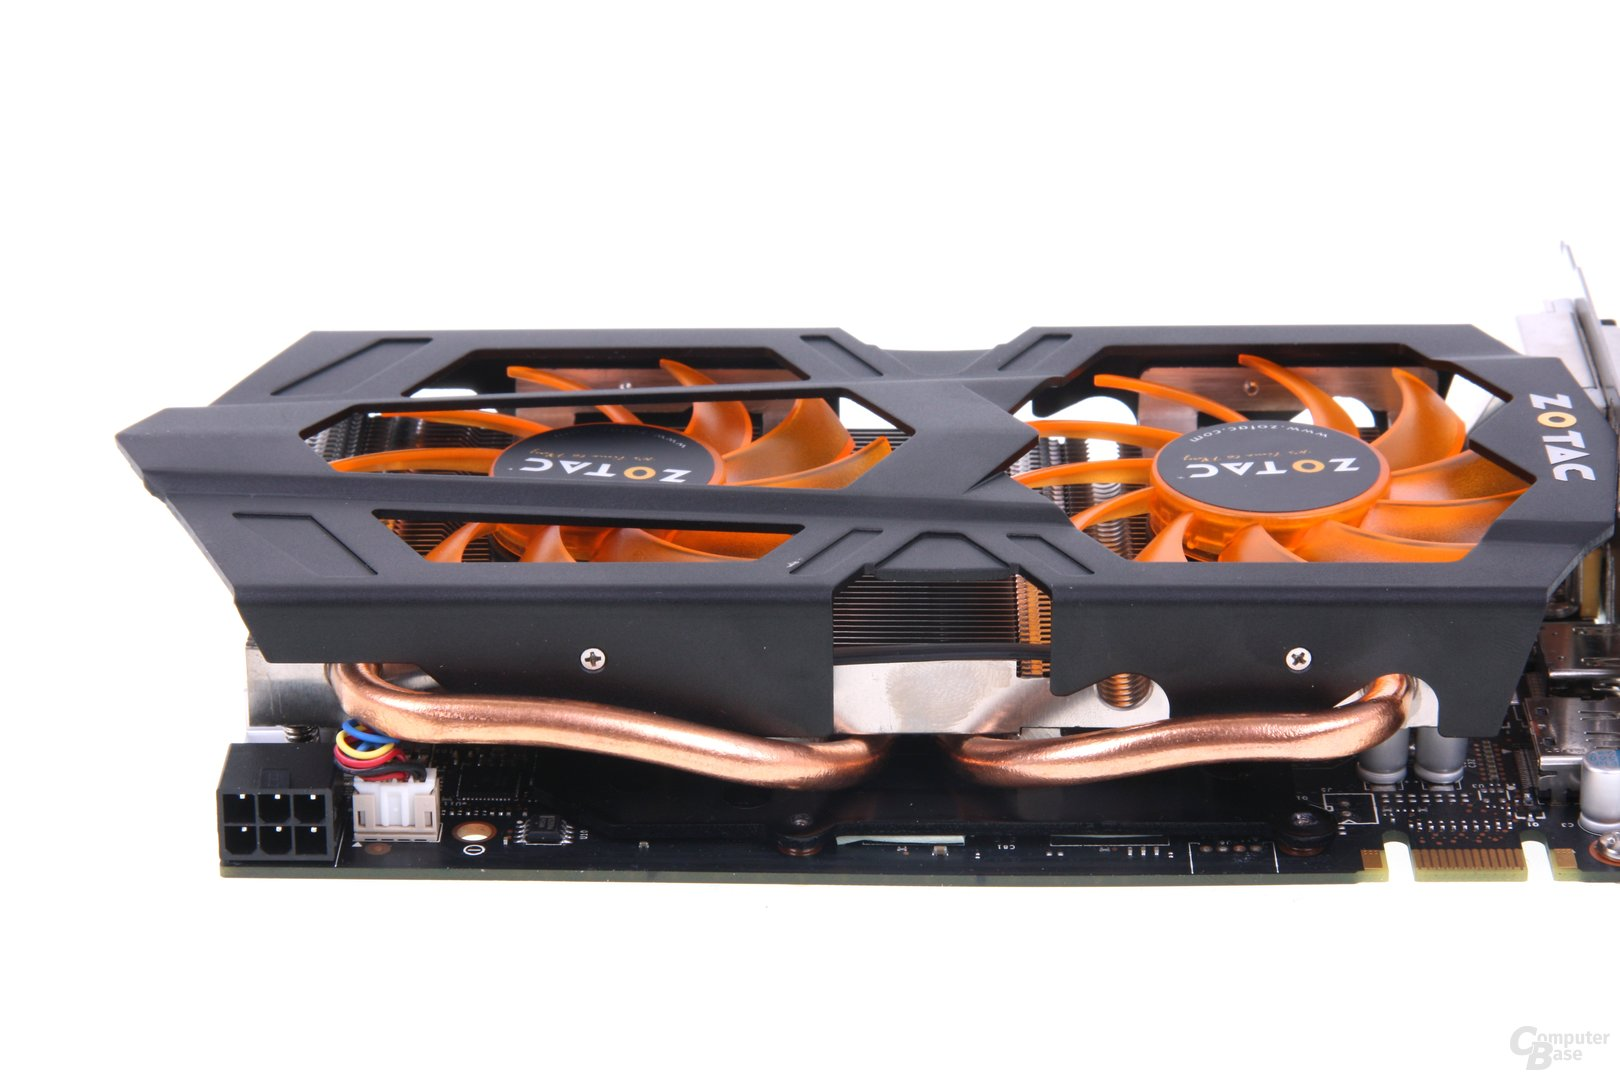 GeForce GTX 660 Heatpipes